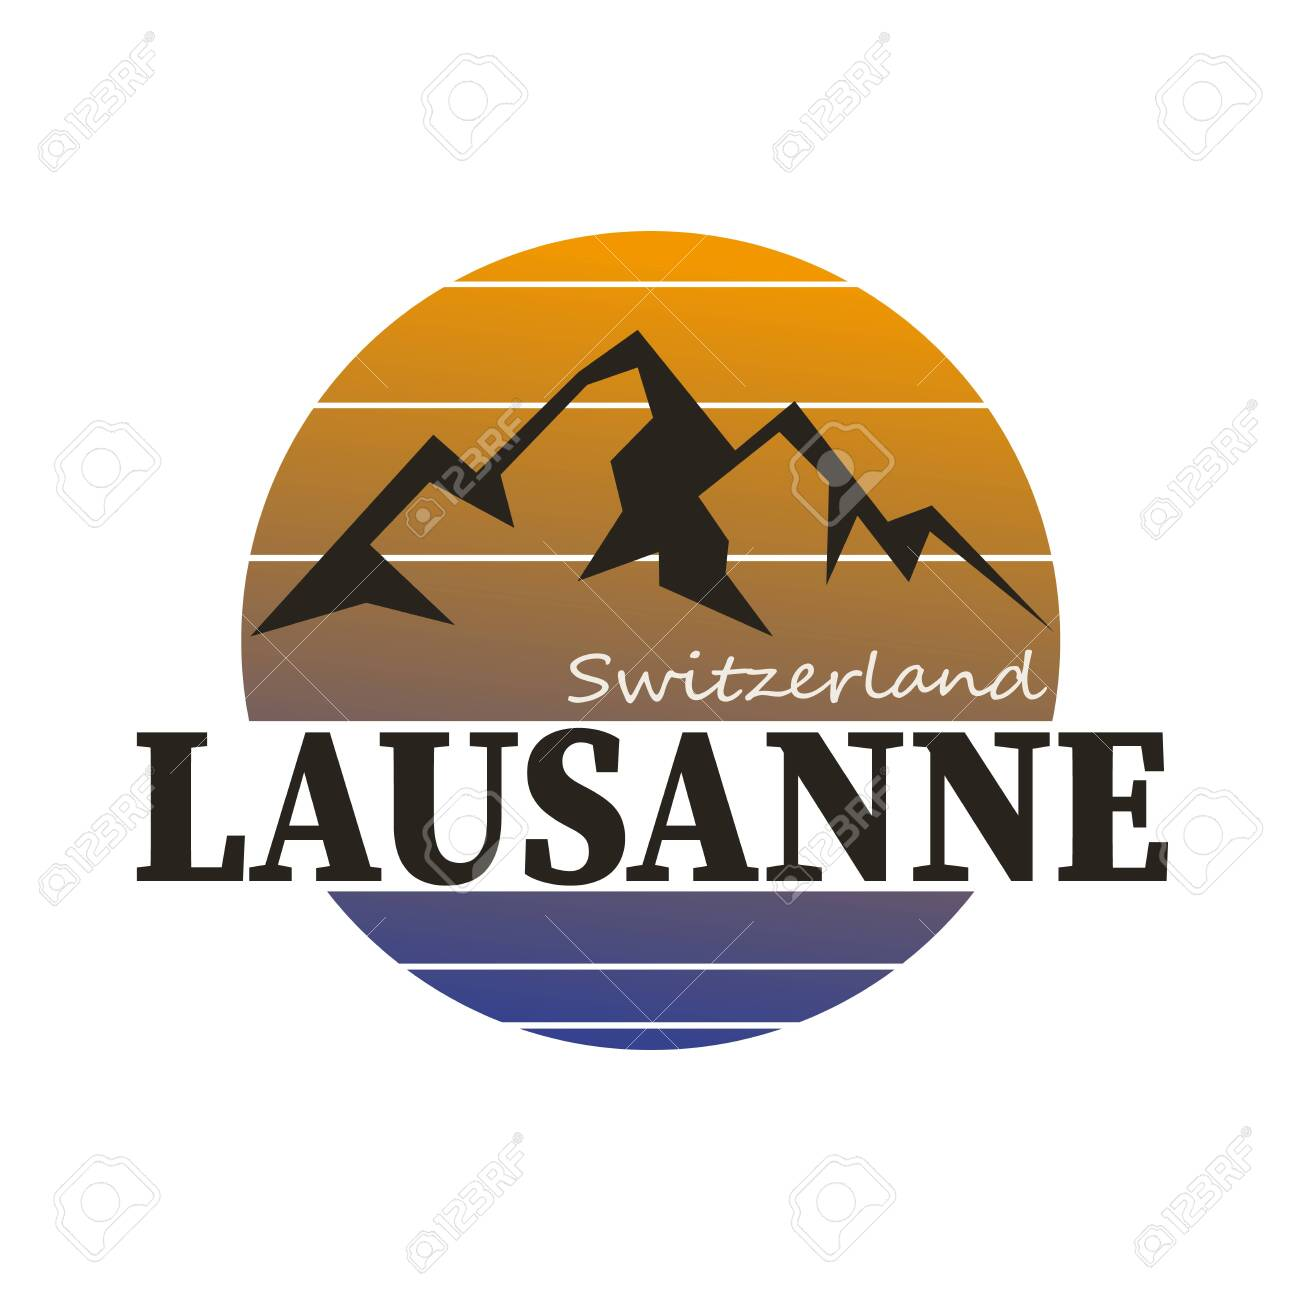 LOGO BADGE with the text Switzerland, Lausanne, vector illustration - 141789361